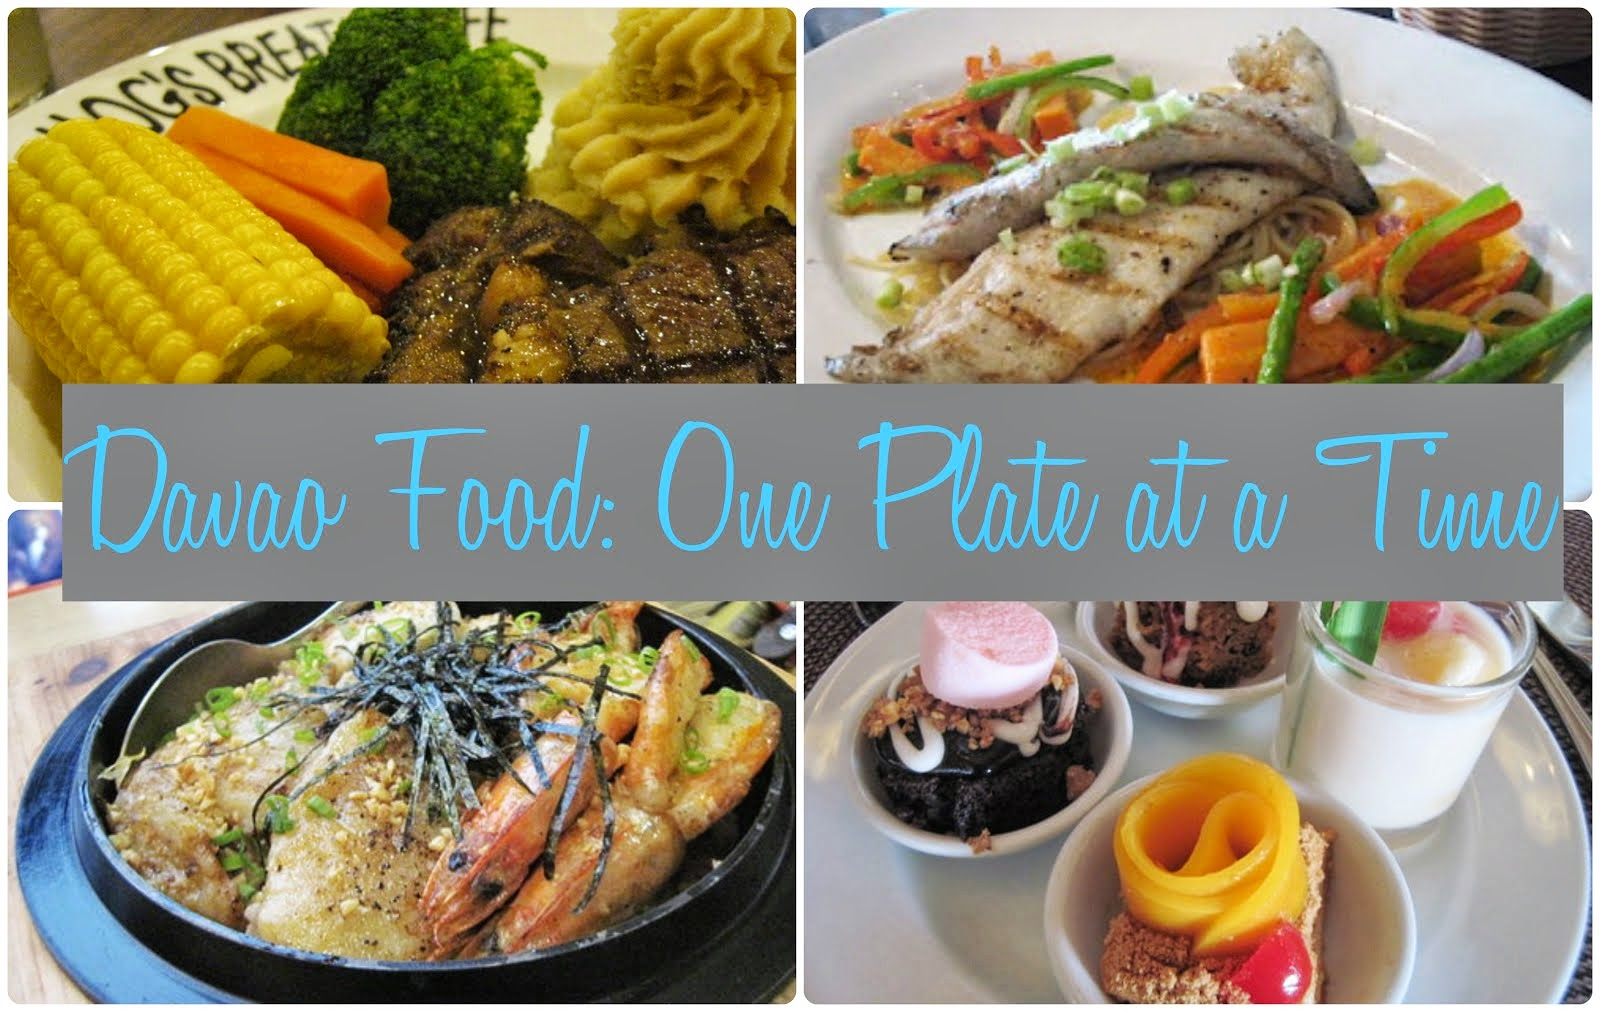 Davao Food: One Plate At a Time